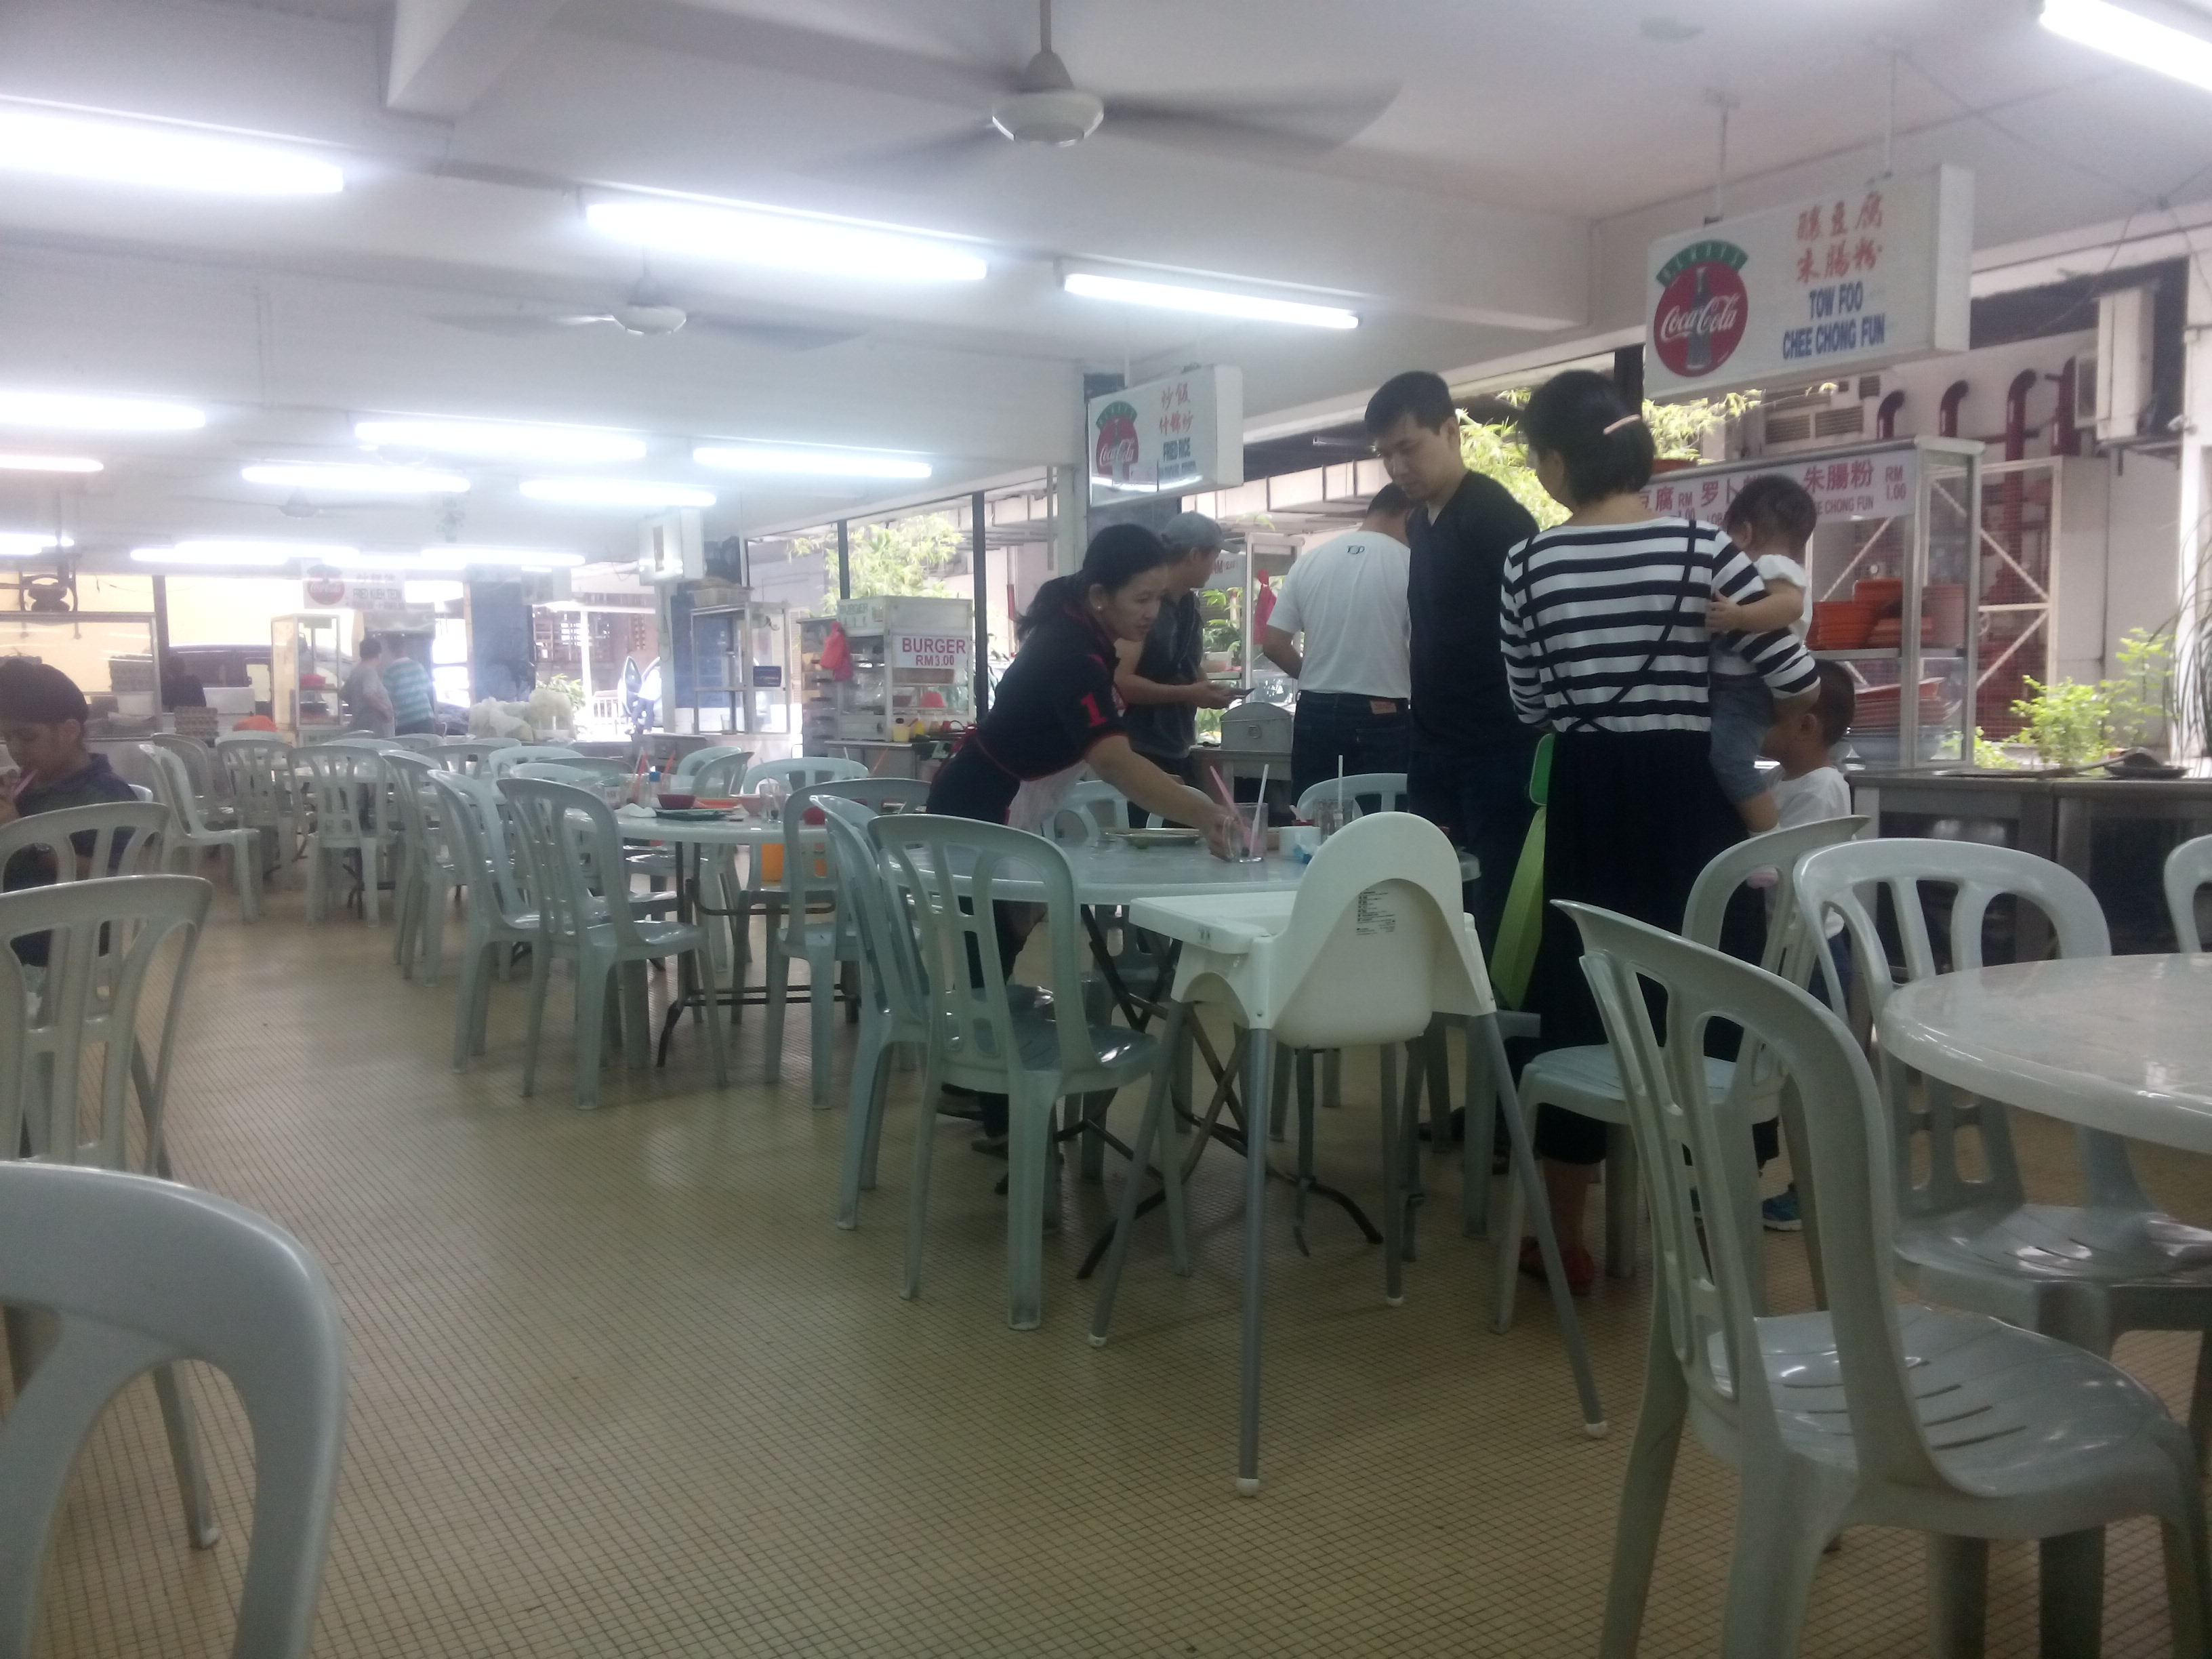 Inside Blue Boy: plastic tables and chairs, people, food stalls